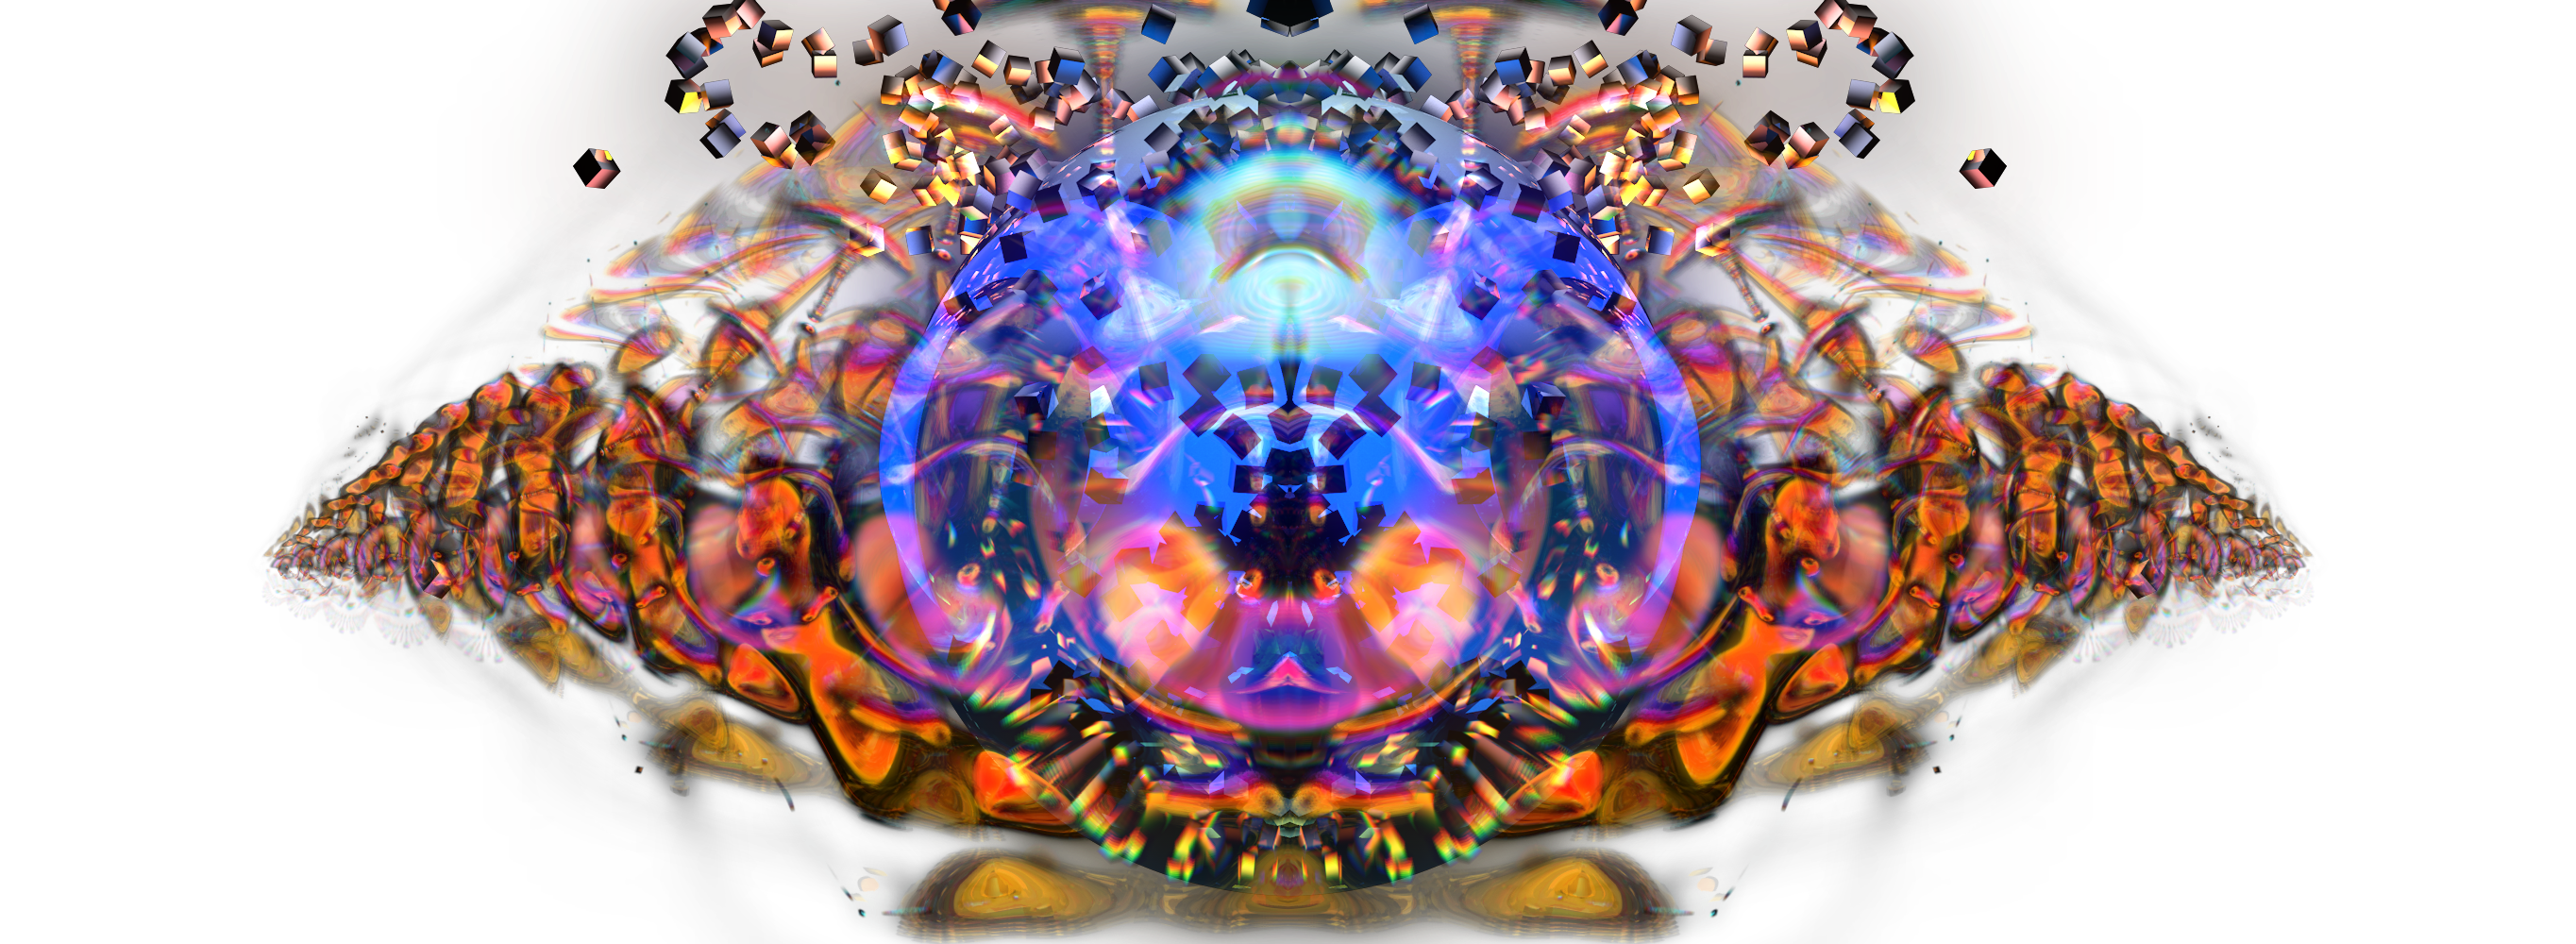 orbwall (06804)_1.png